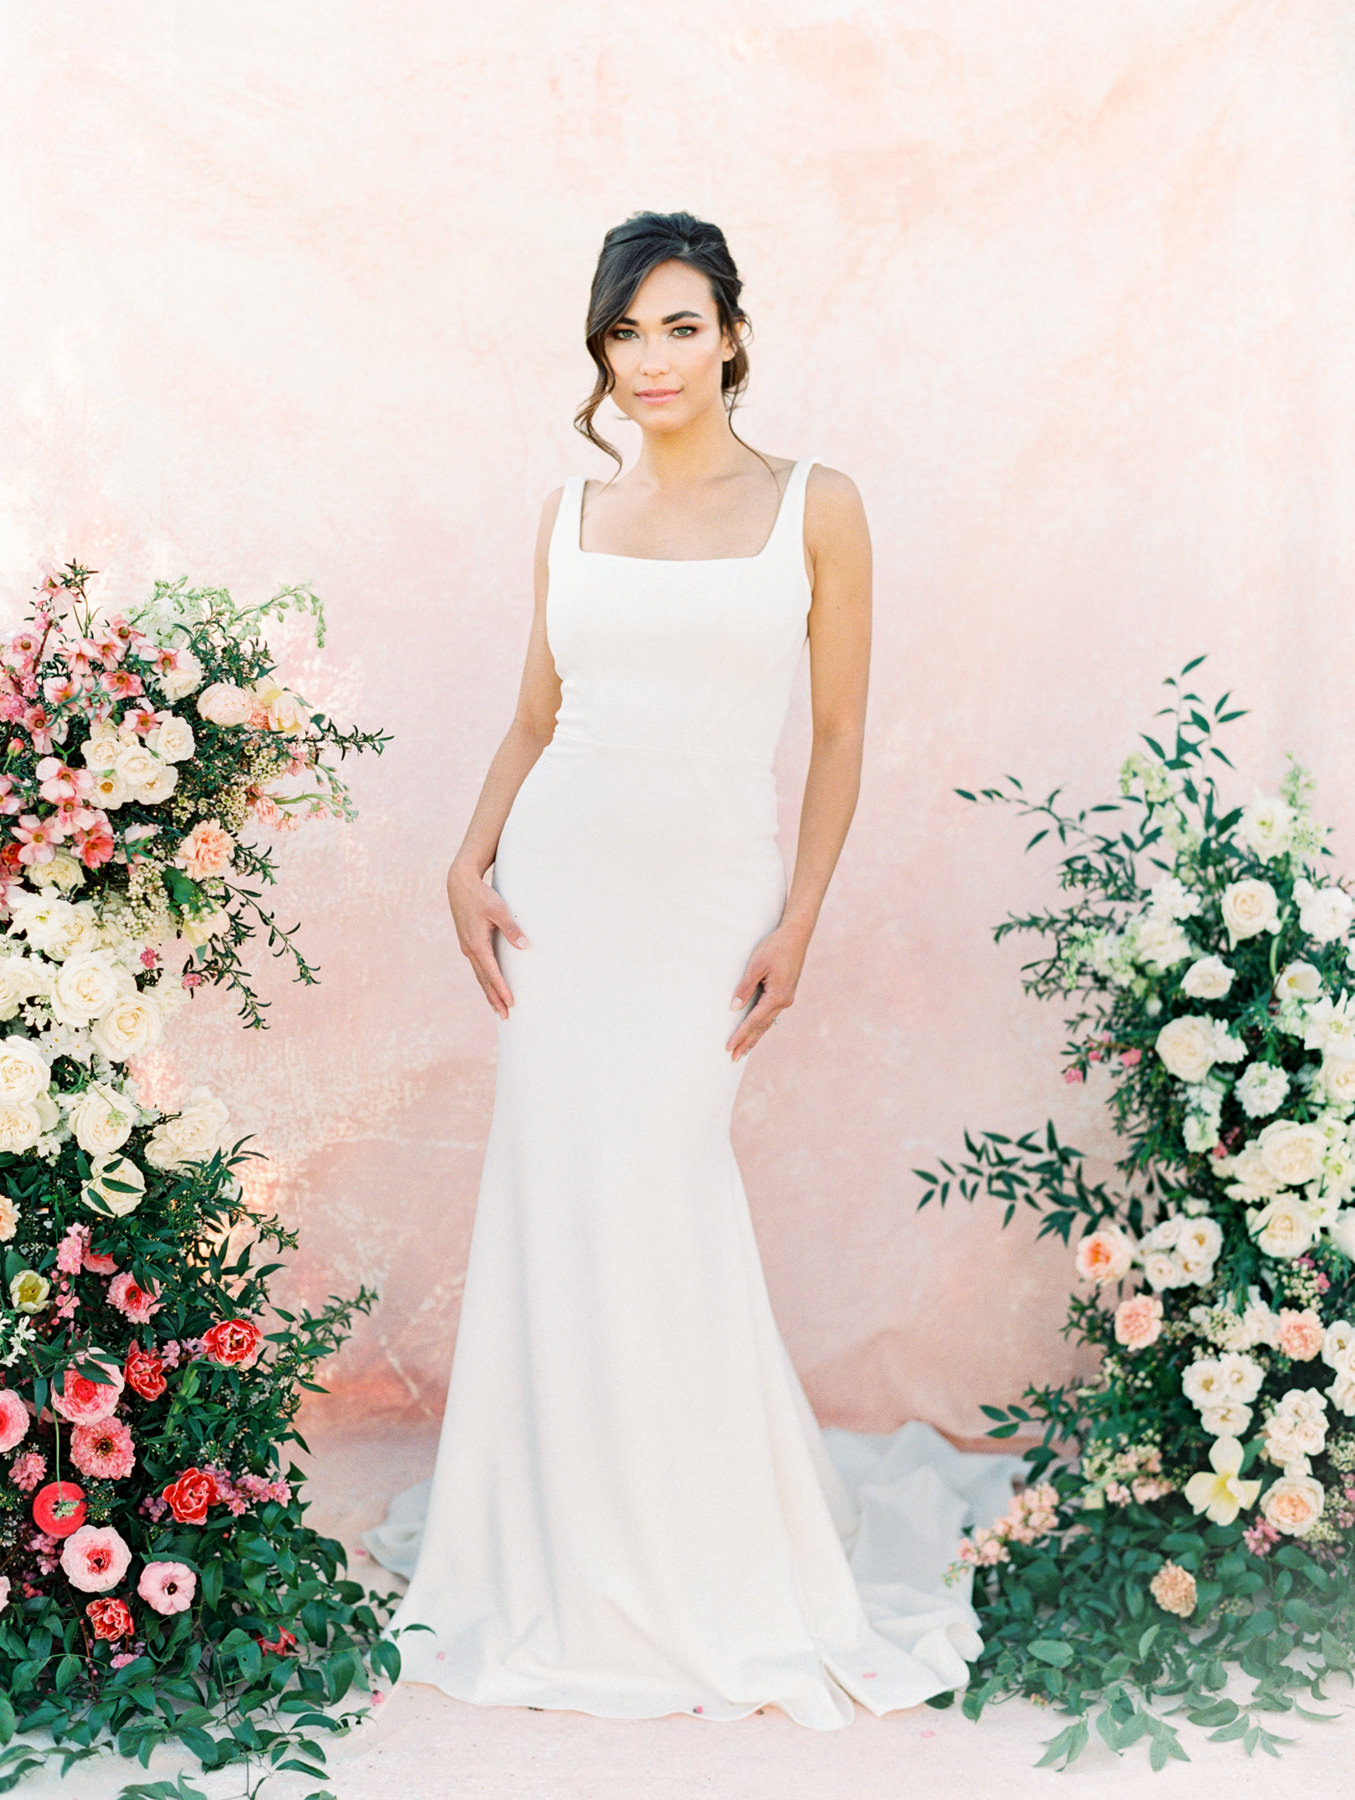 Asymmetrical floral arch with pink and ivory roses, sweet peas, ranunculus, carnations, and greenery with a pink painterly backdrop. Martina Liana 1235 crepe square neck fit to flare gown from The White Flower. Fine art bridal curled updo. Cavin Elizabeth Photography - film photographer in San Diego.